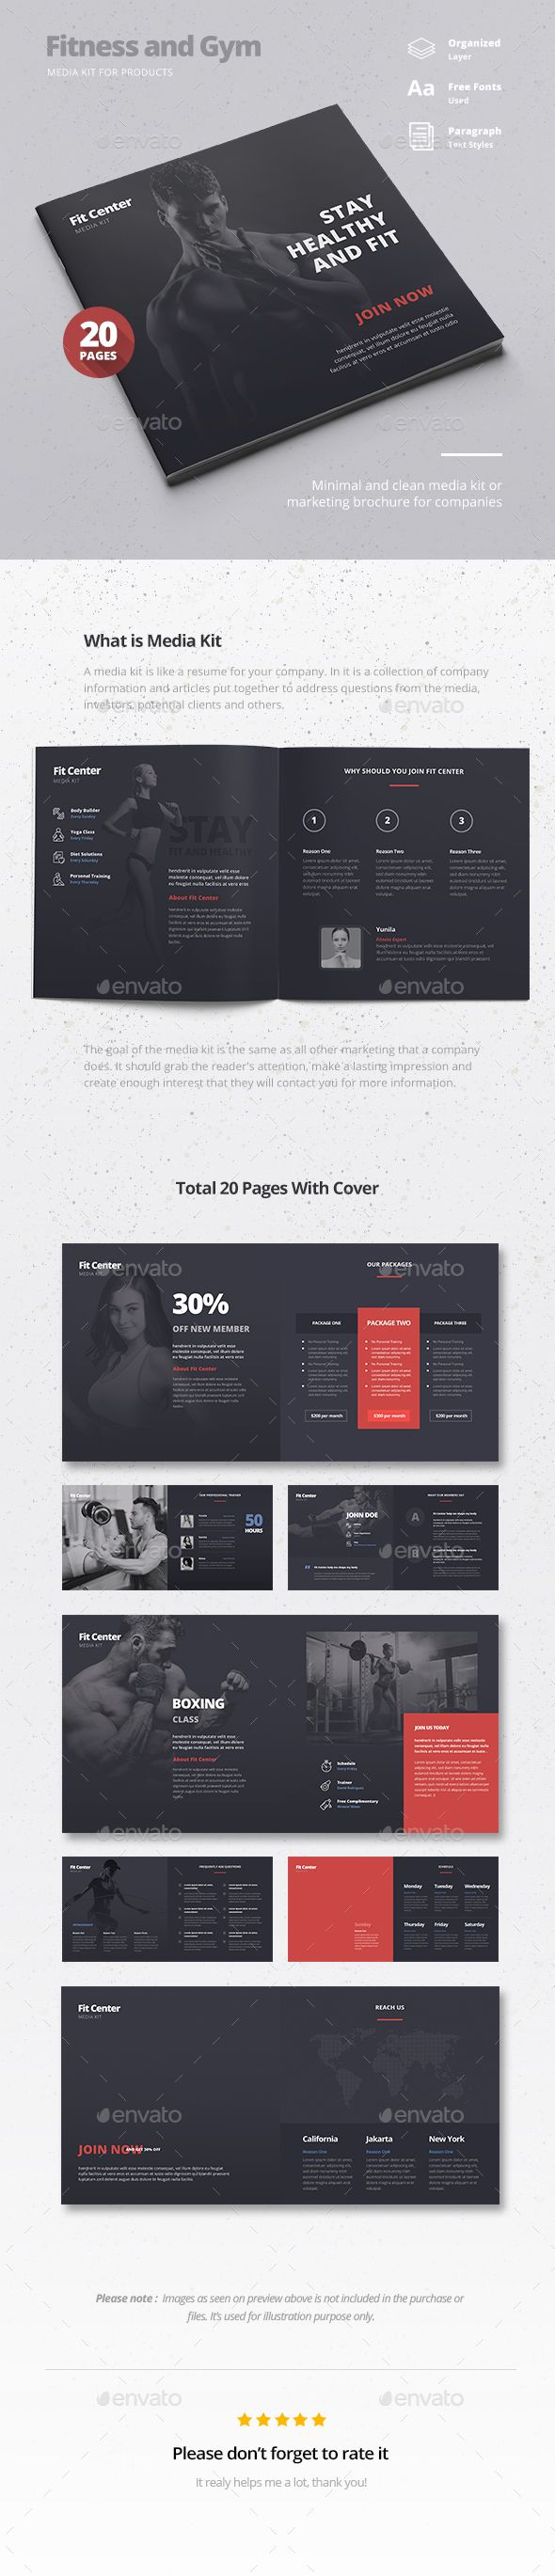 Fitness Gym Media Kit Brochure Template Psd Design Download Http